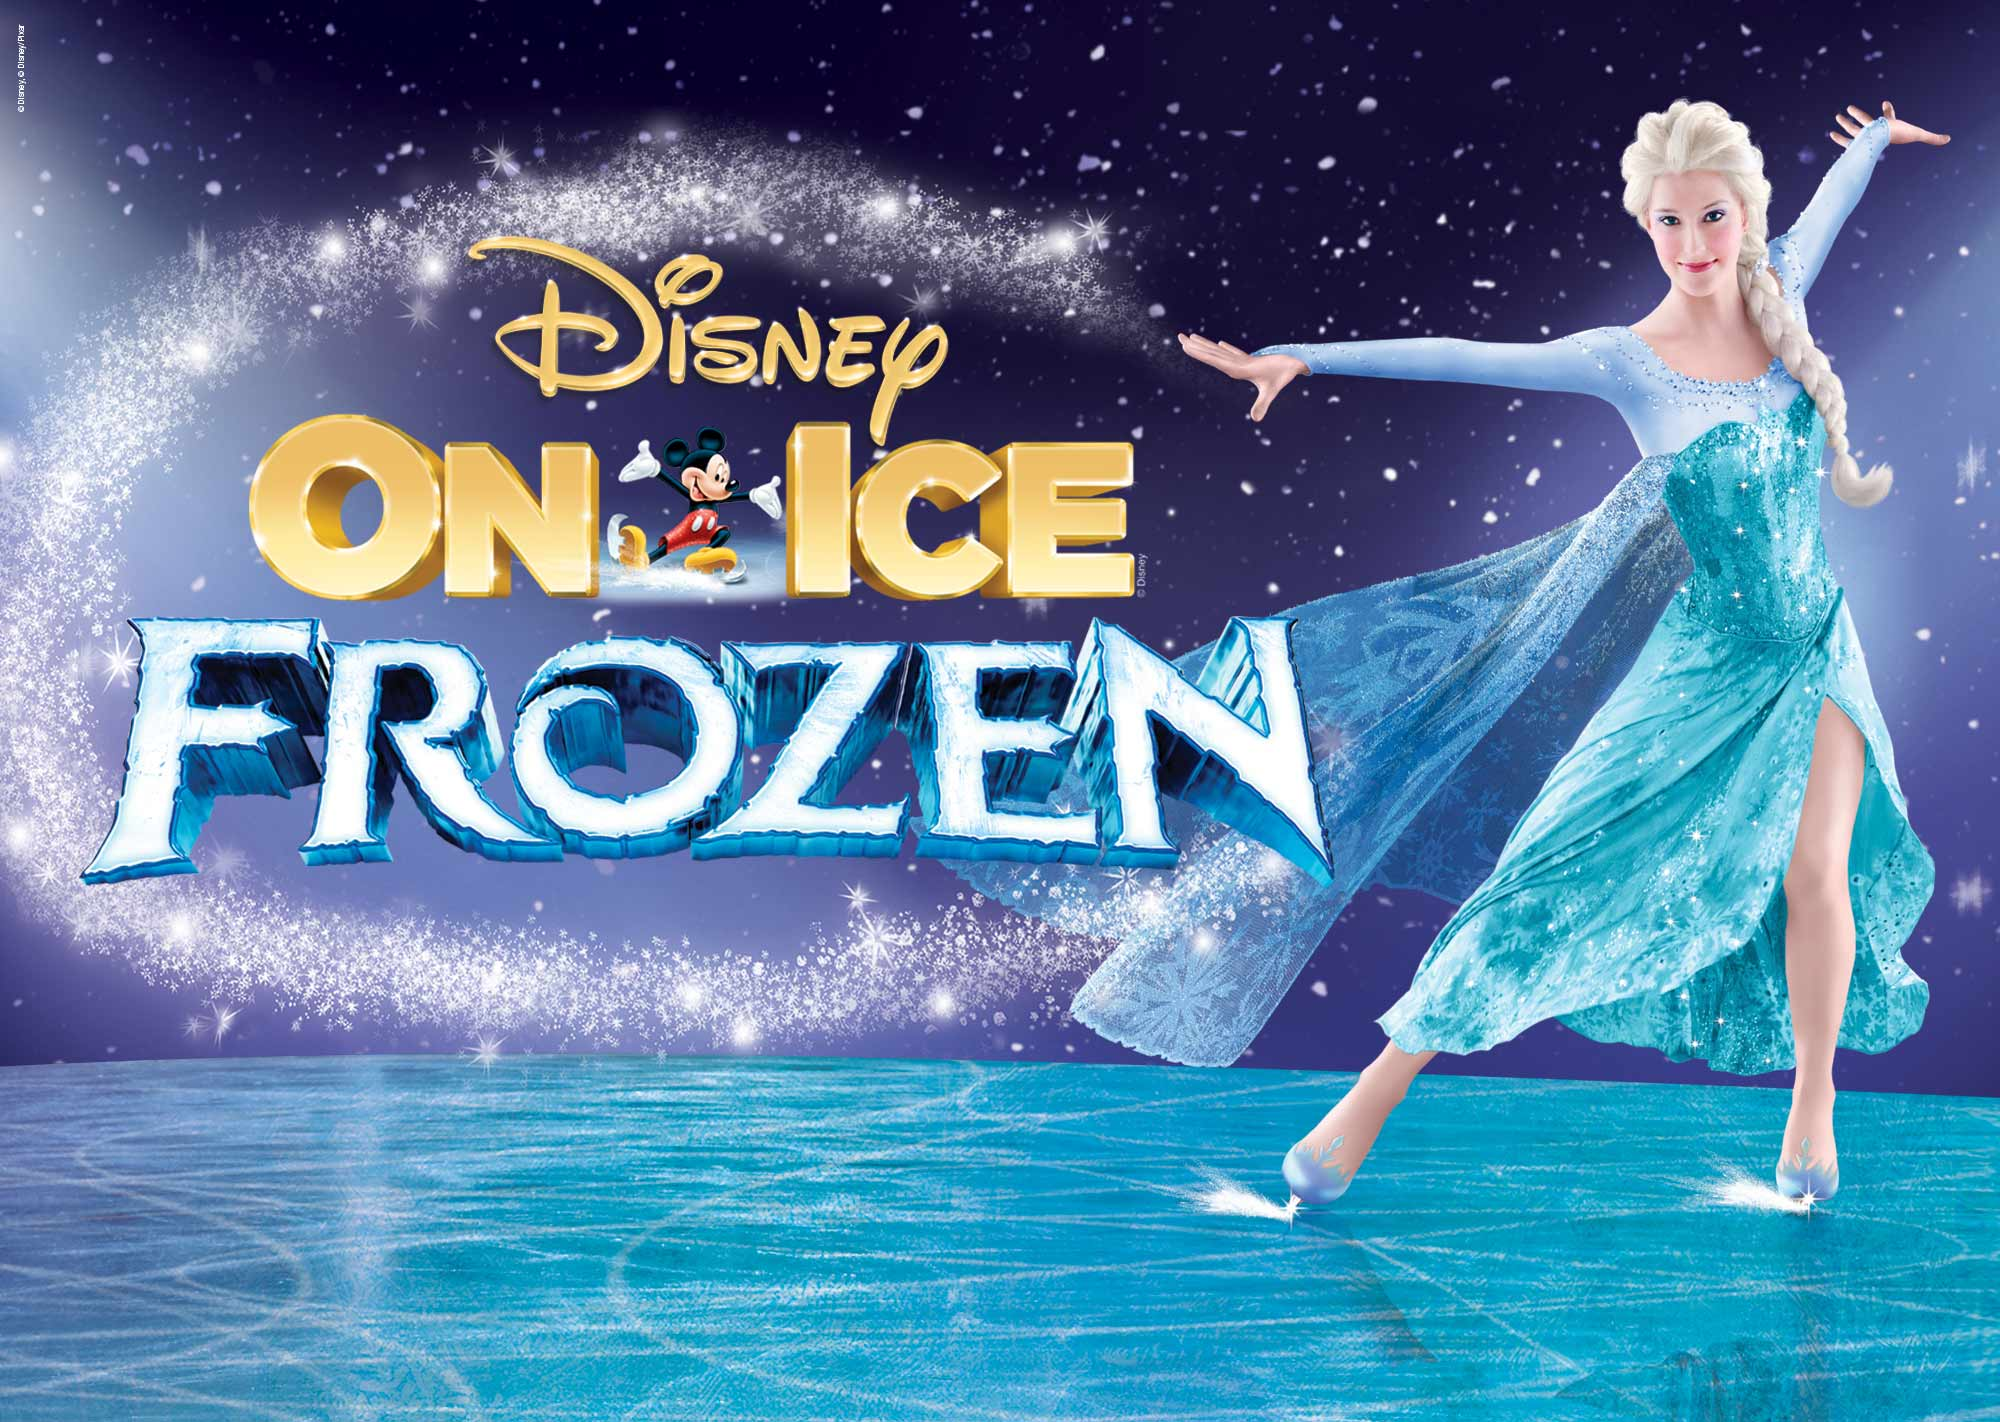 Disney On Ice Frozen_2000x1422.jpg